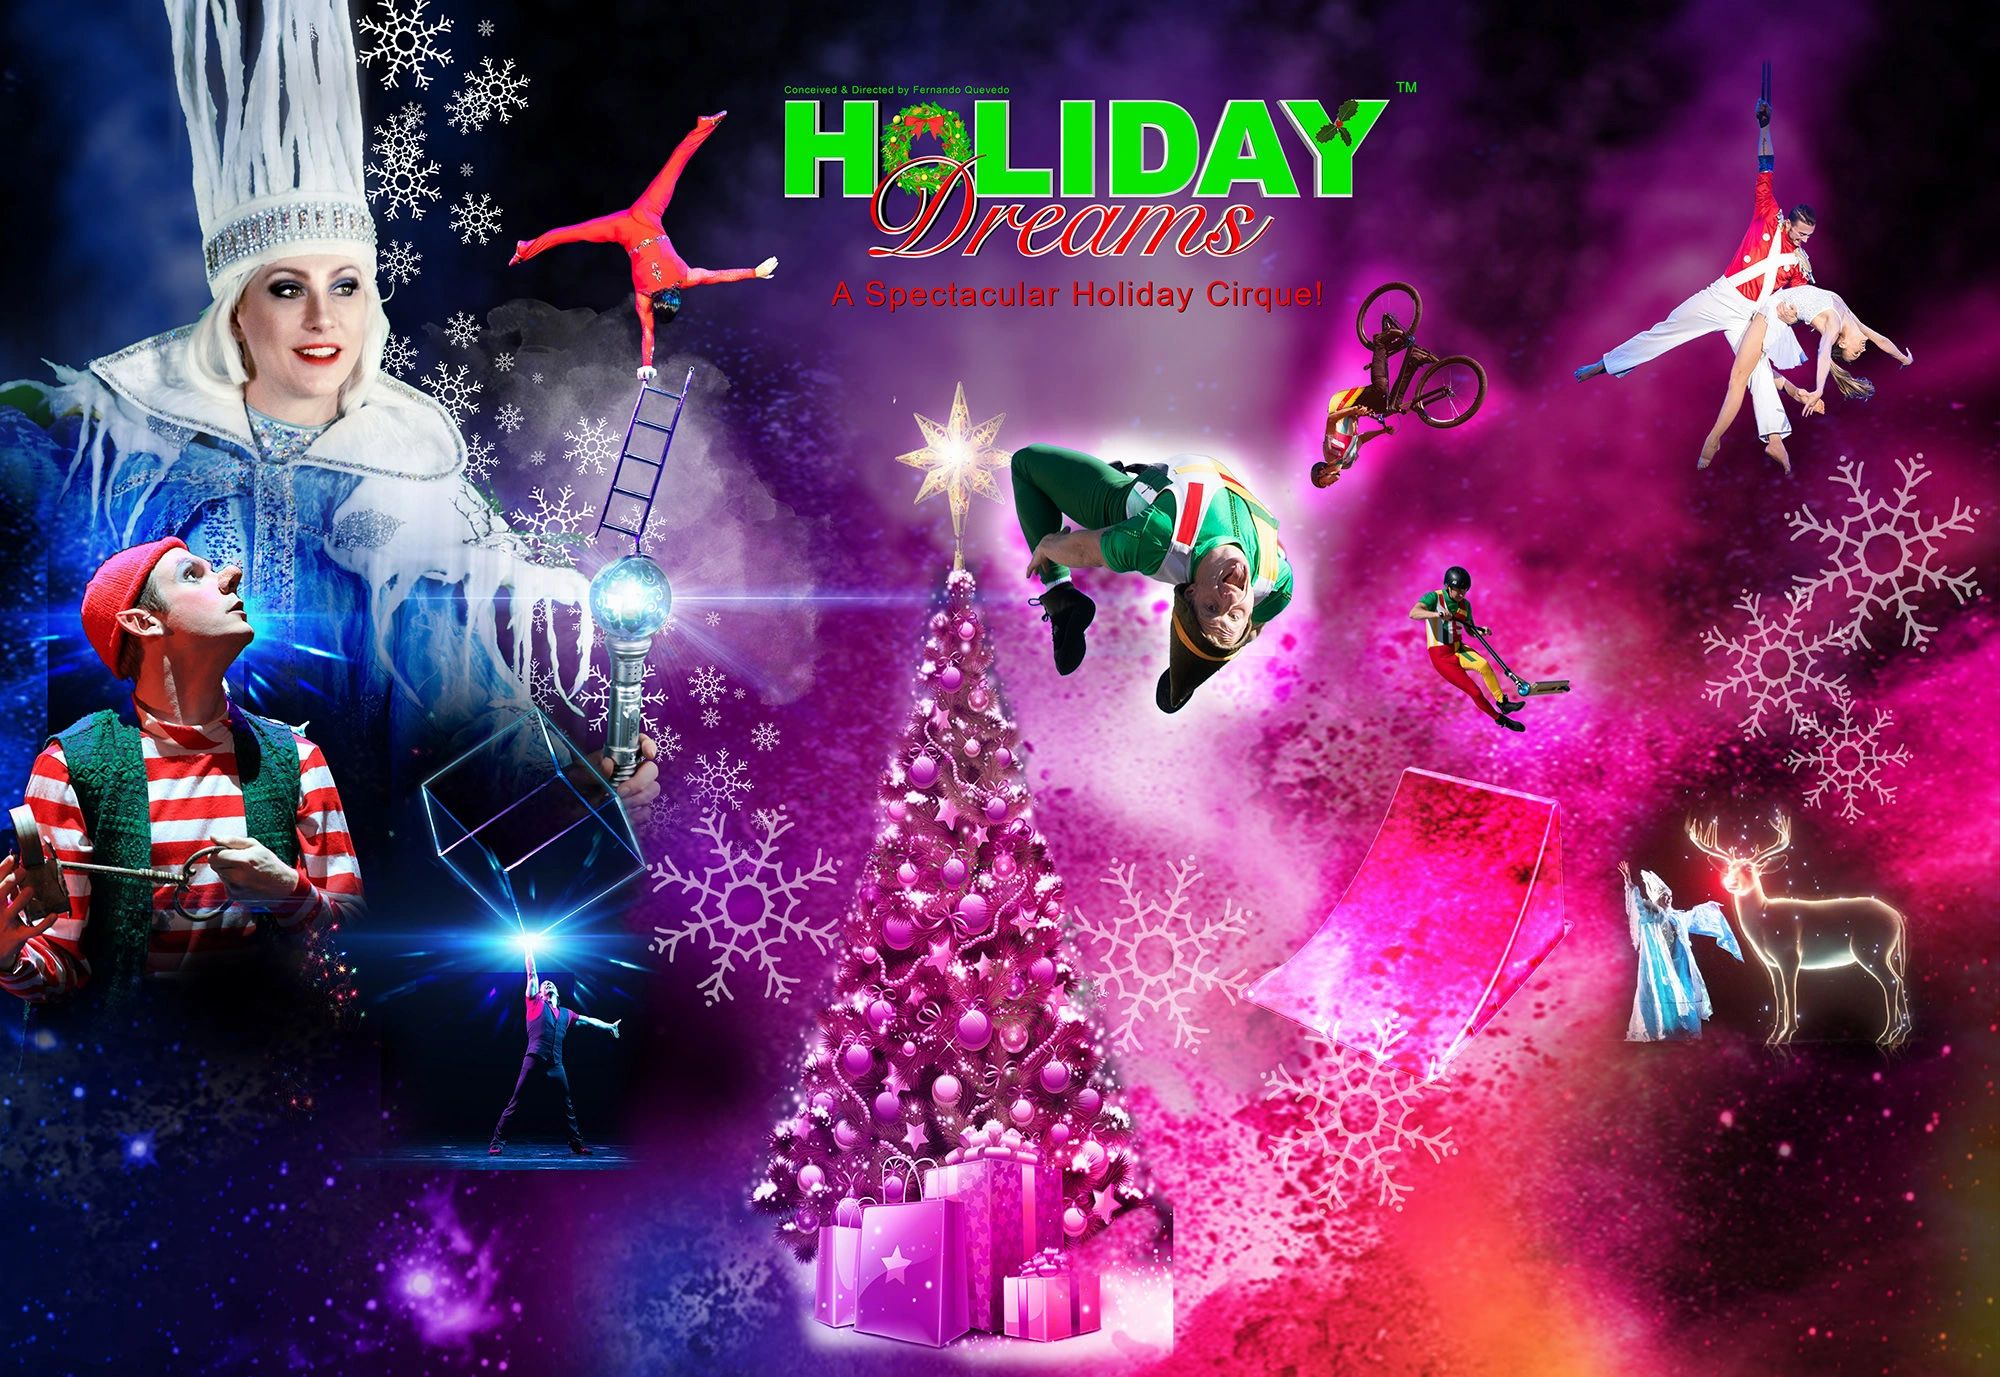 Holiday Dreams Cirque Show.Bbest holiday show featuring holograms, projection mapping and lasers!